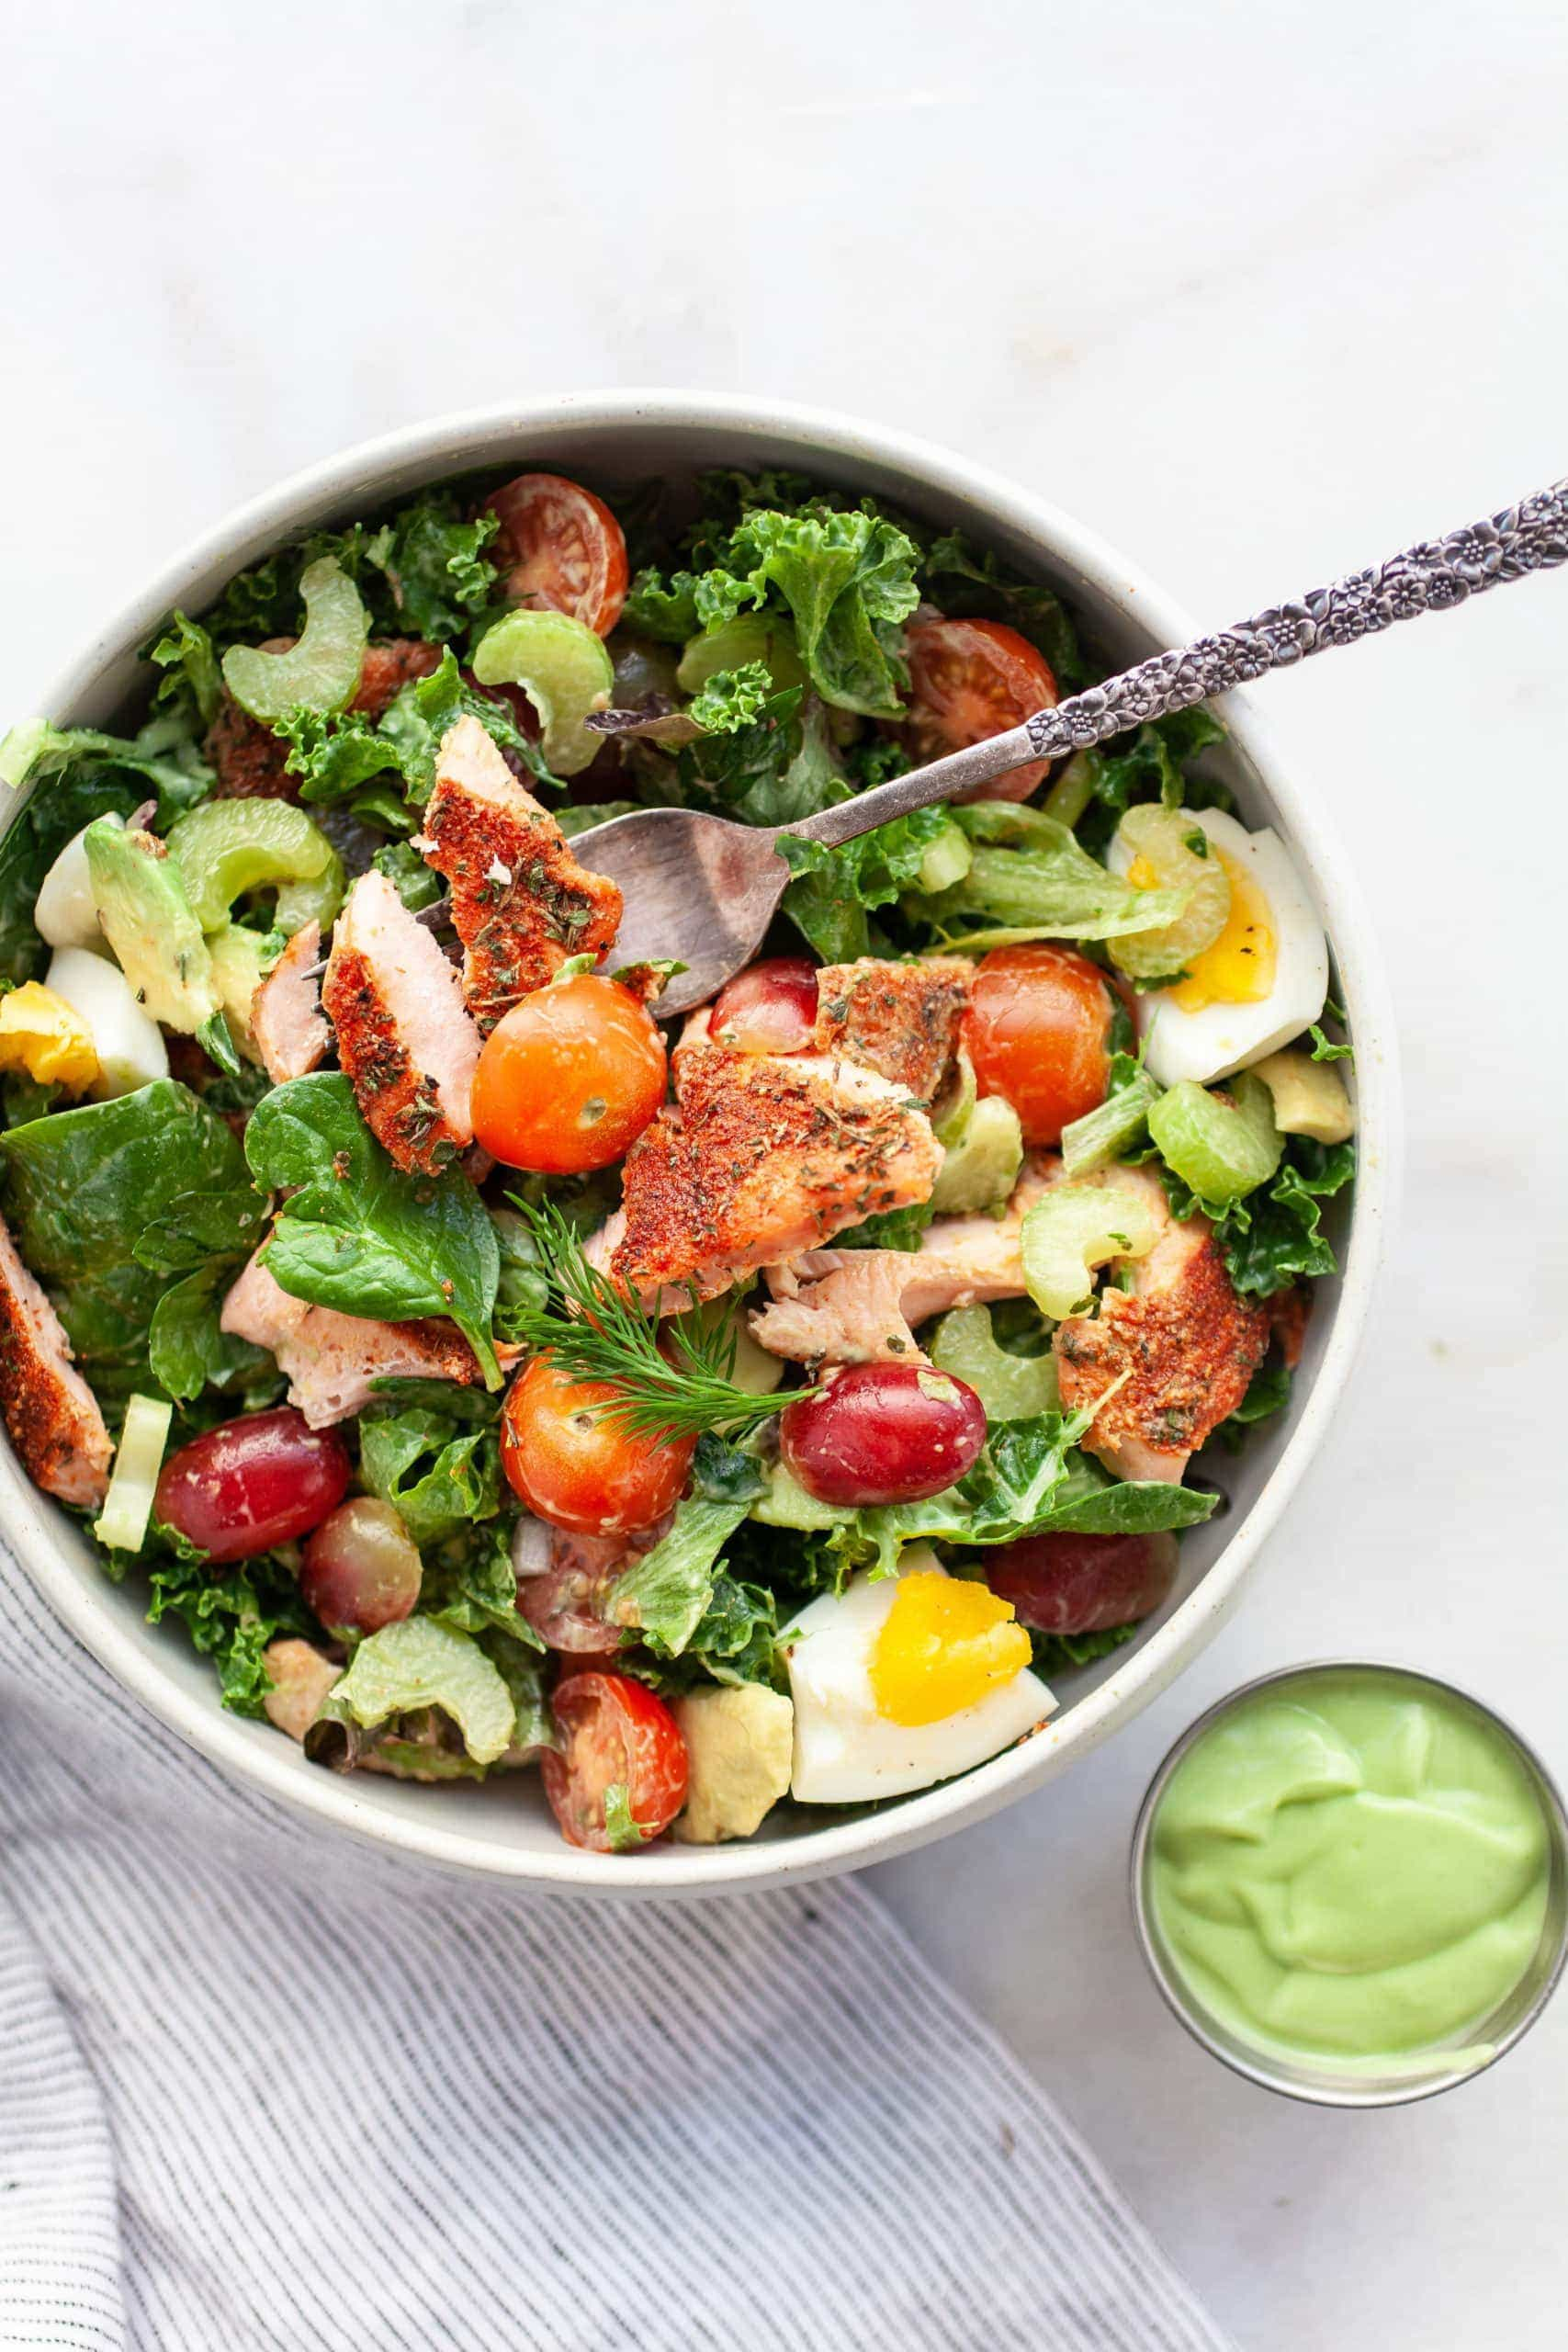 Delicious and Healthy Blackened Salmon Salad